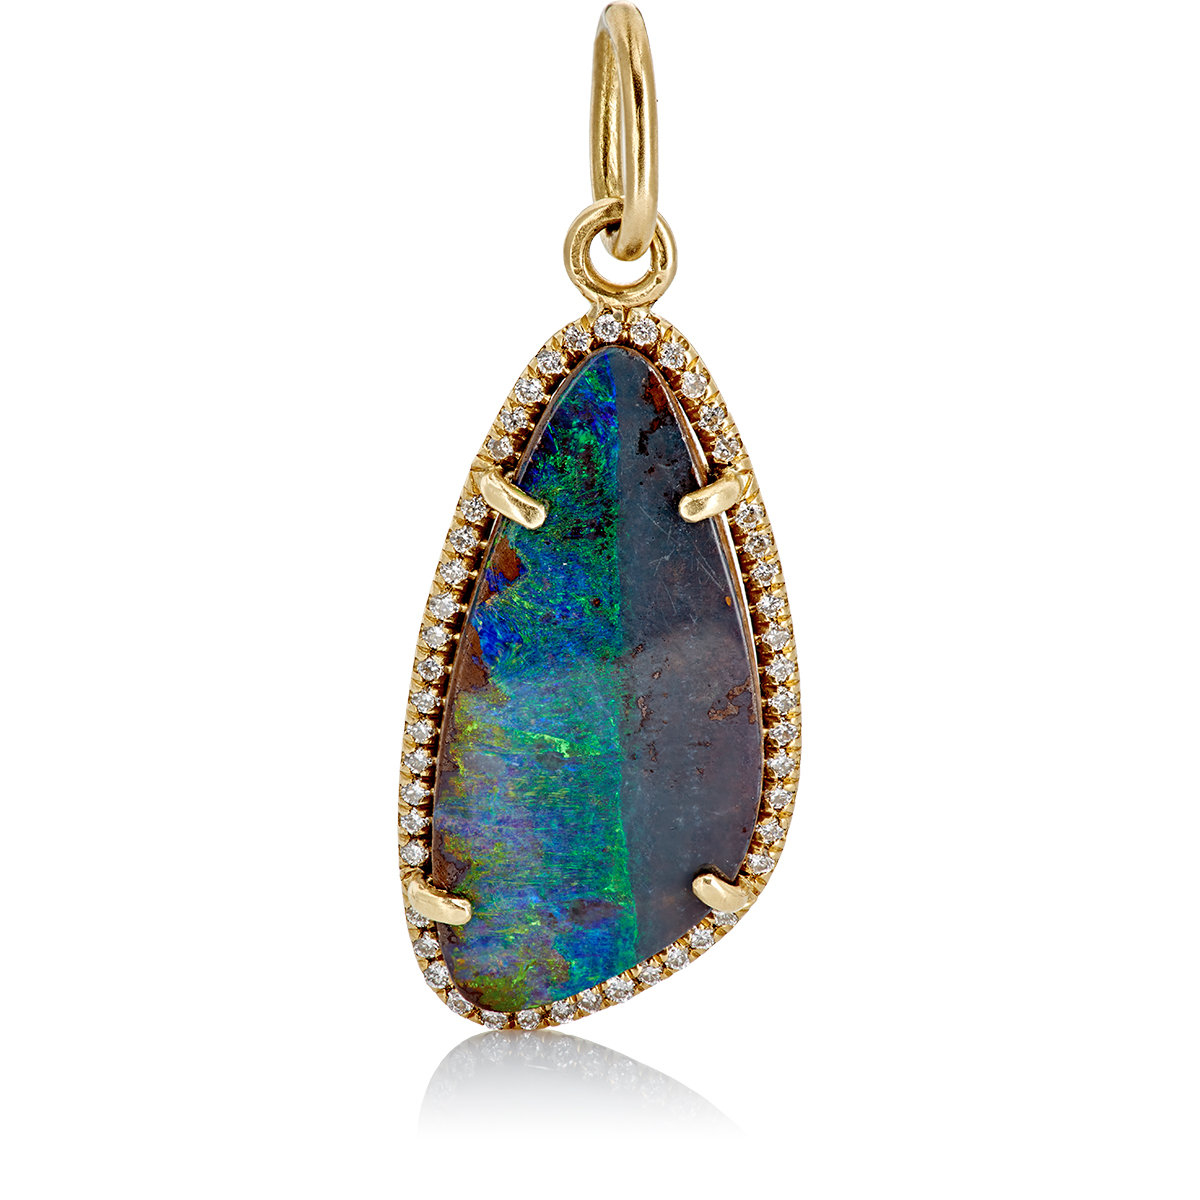 Irene neuwirth diamond boulder opal pendant in blue lyst for Jewelry stores boulder co